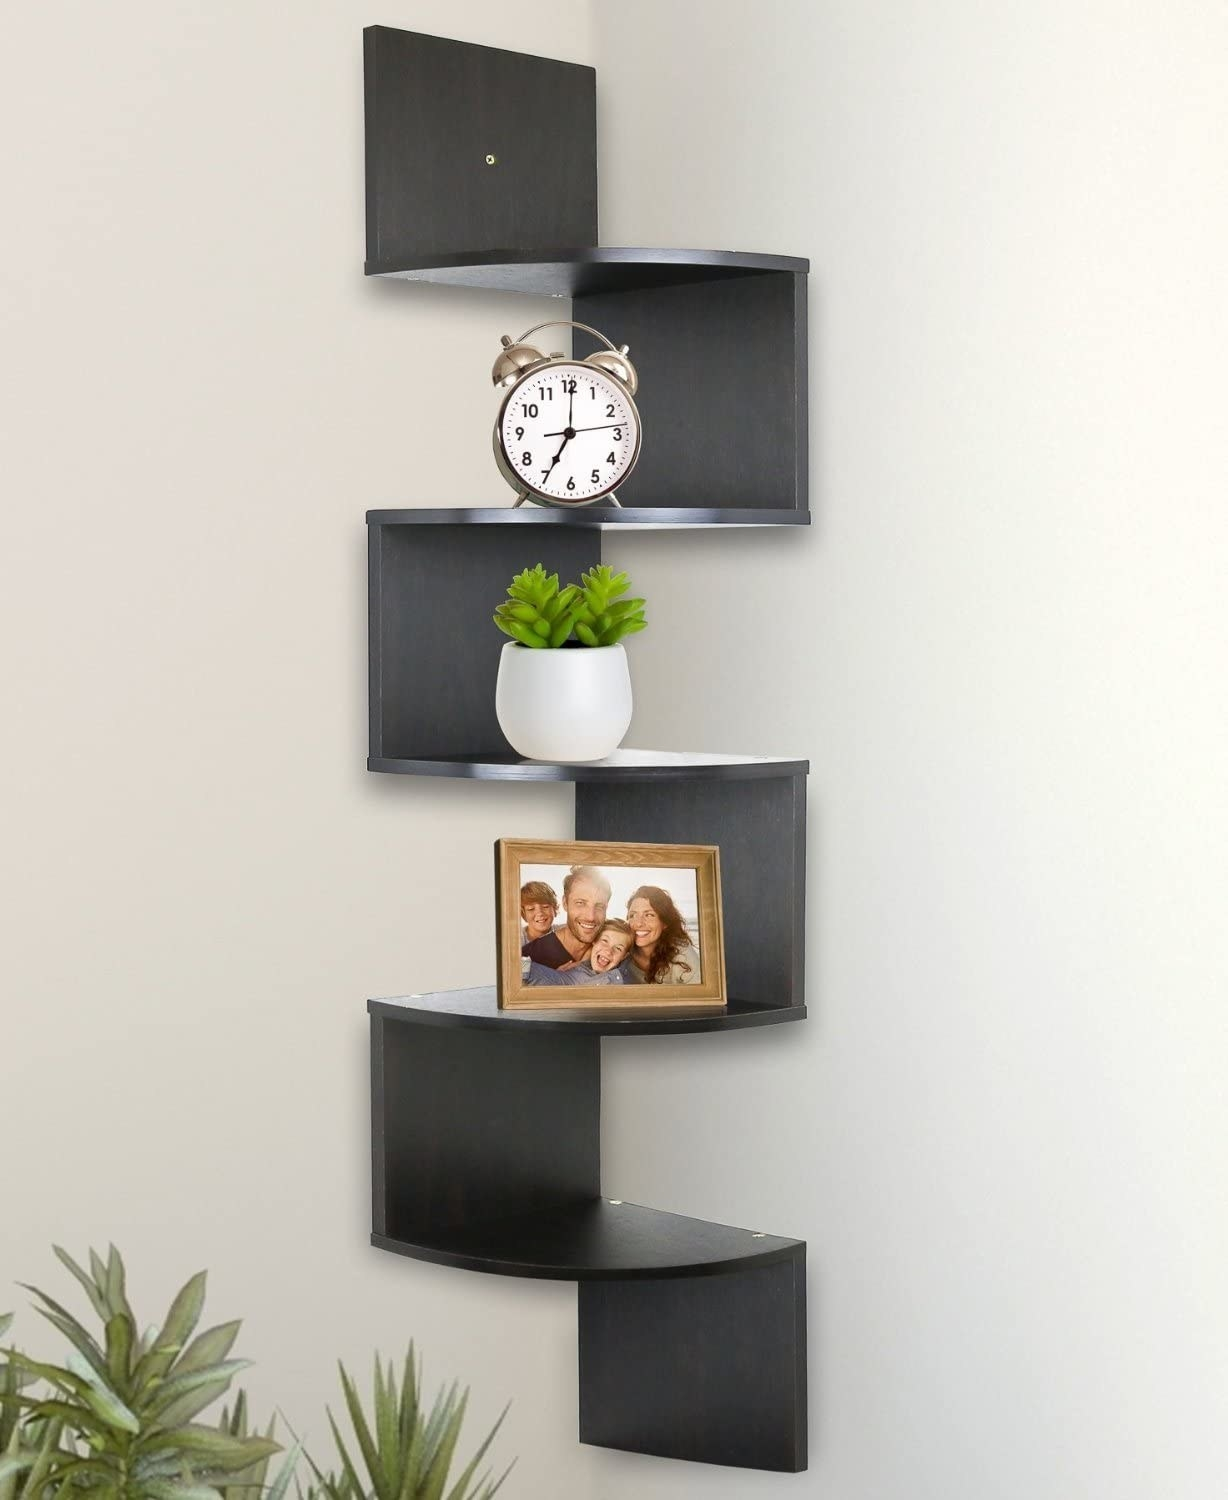 A corner shelf with a clock, plant, and picture frame on it